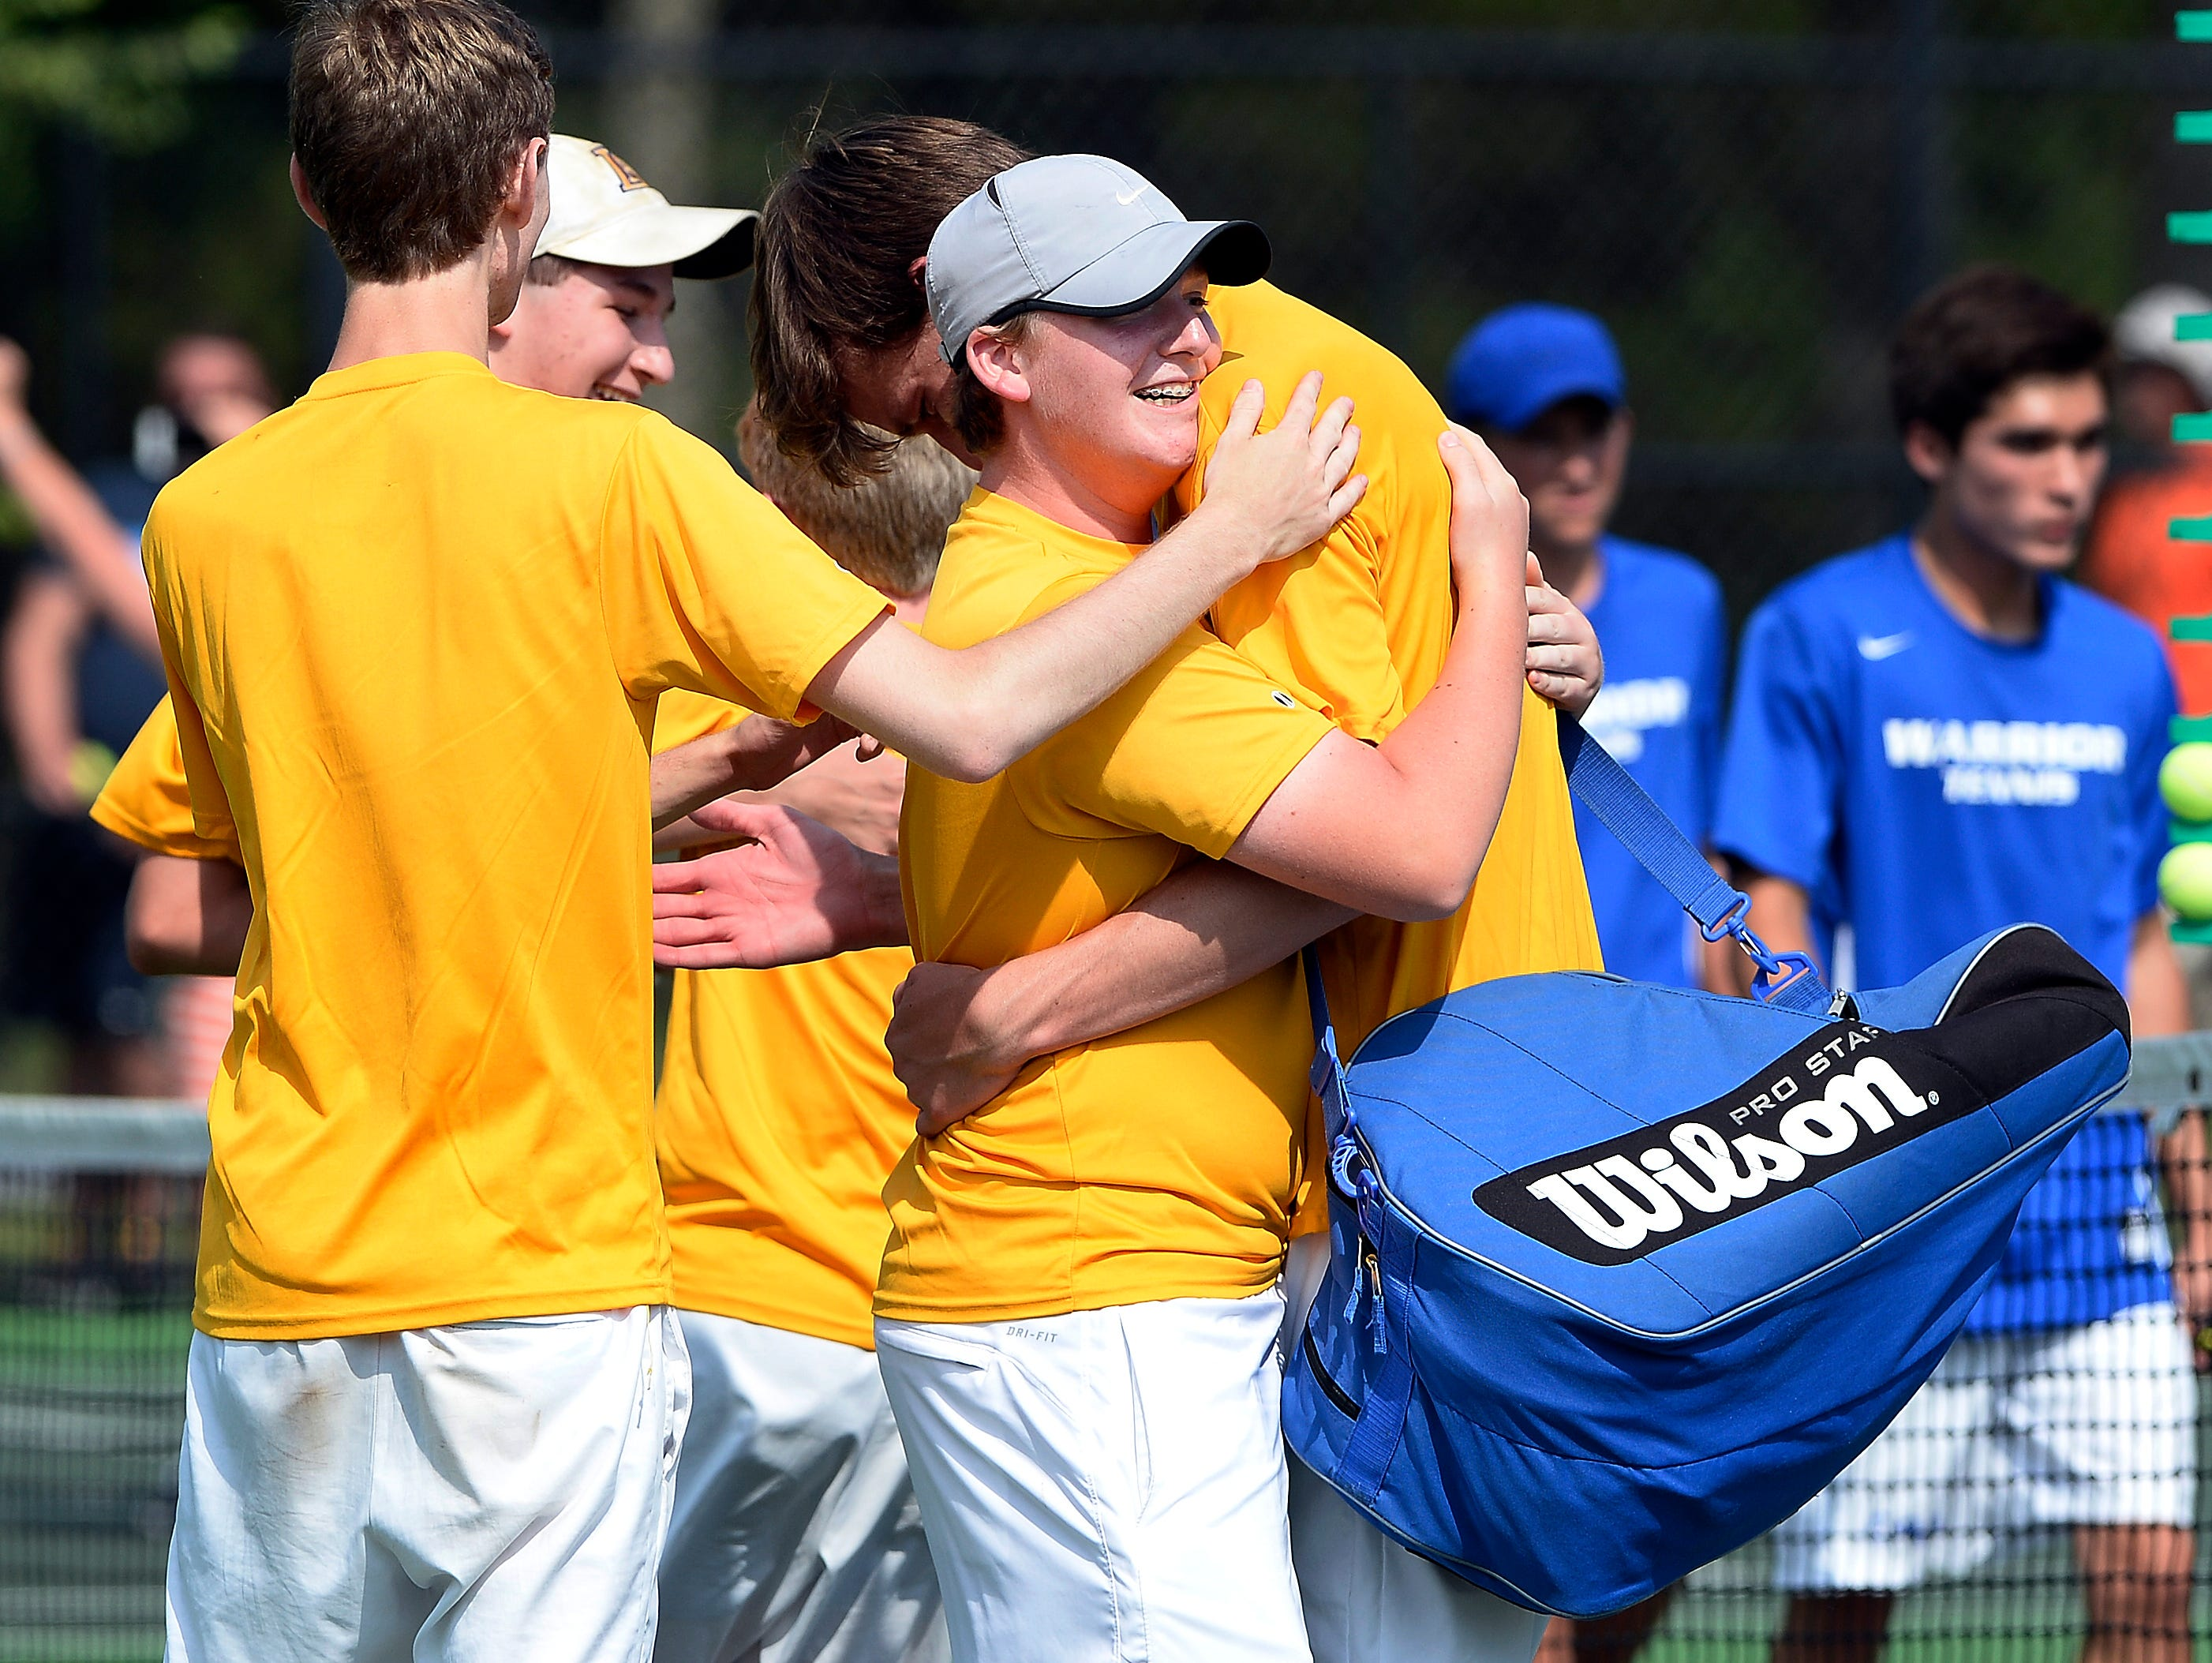 Lipscomb High School players celebrate after defeating Christian Academy of Knoxville 4-2 during the Tennessee Class A-AA boys team tennis championship final Wednesday, May 25, 2016, in Murfreesboro, Tenn.